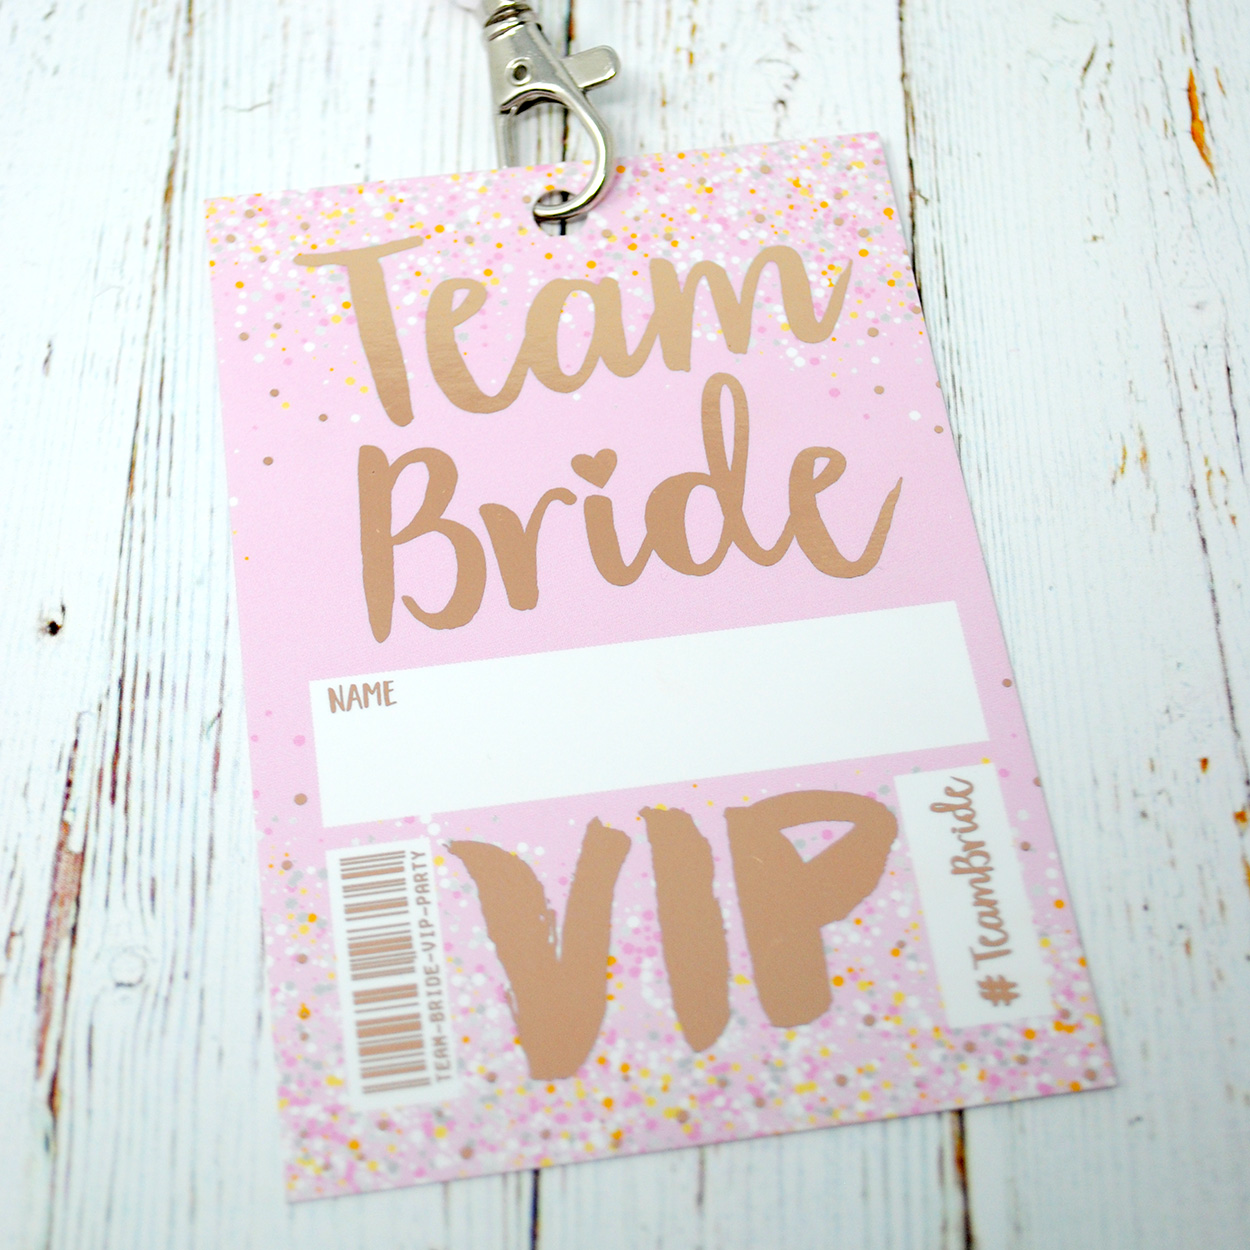 rose gold team bride hen party bachelorette vip lanyard